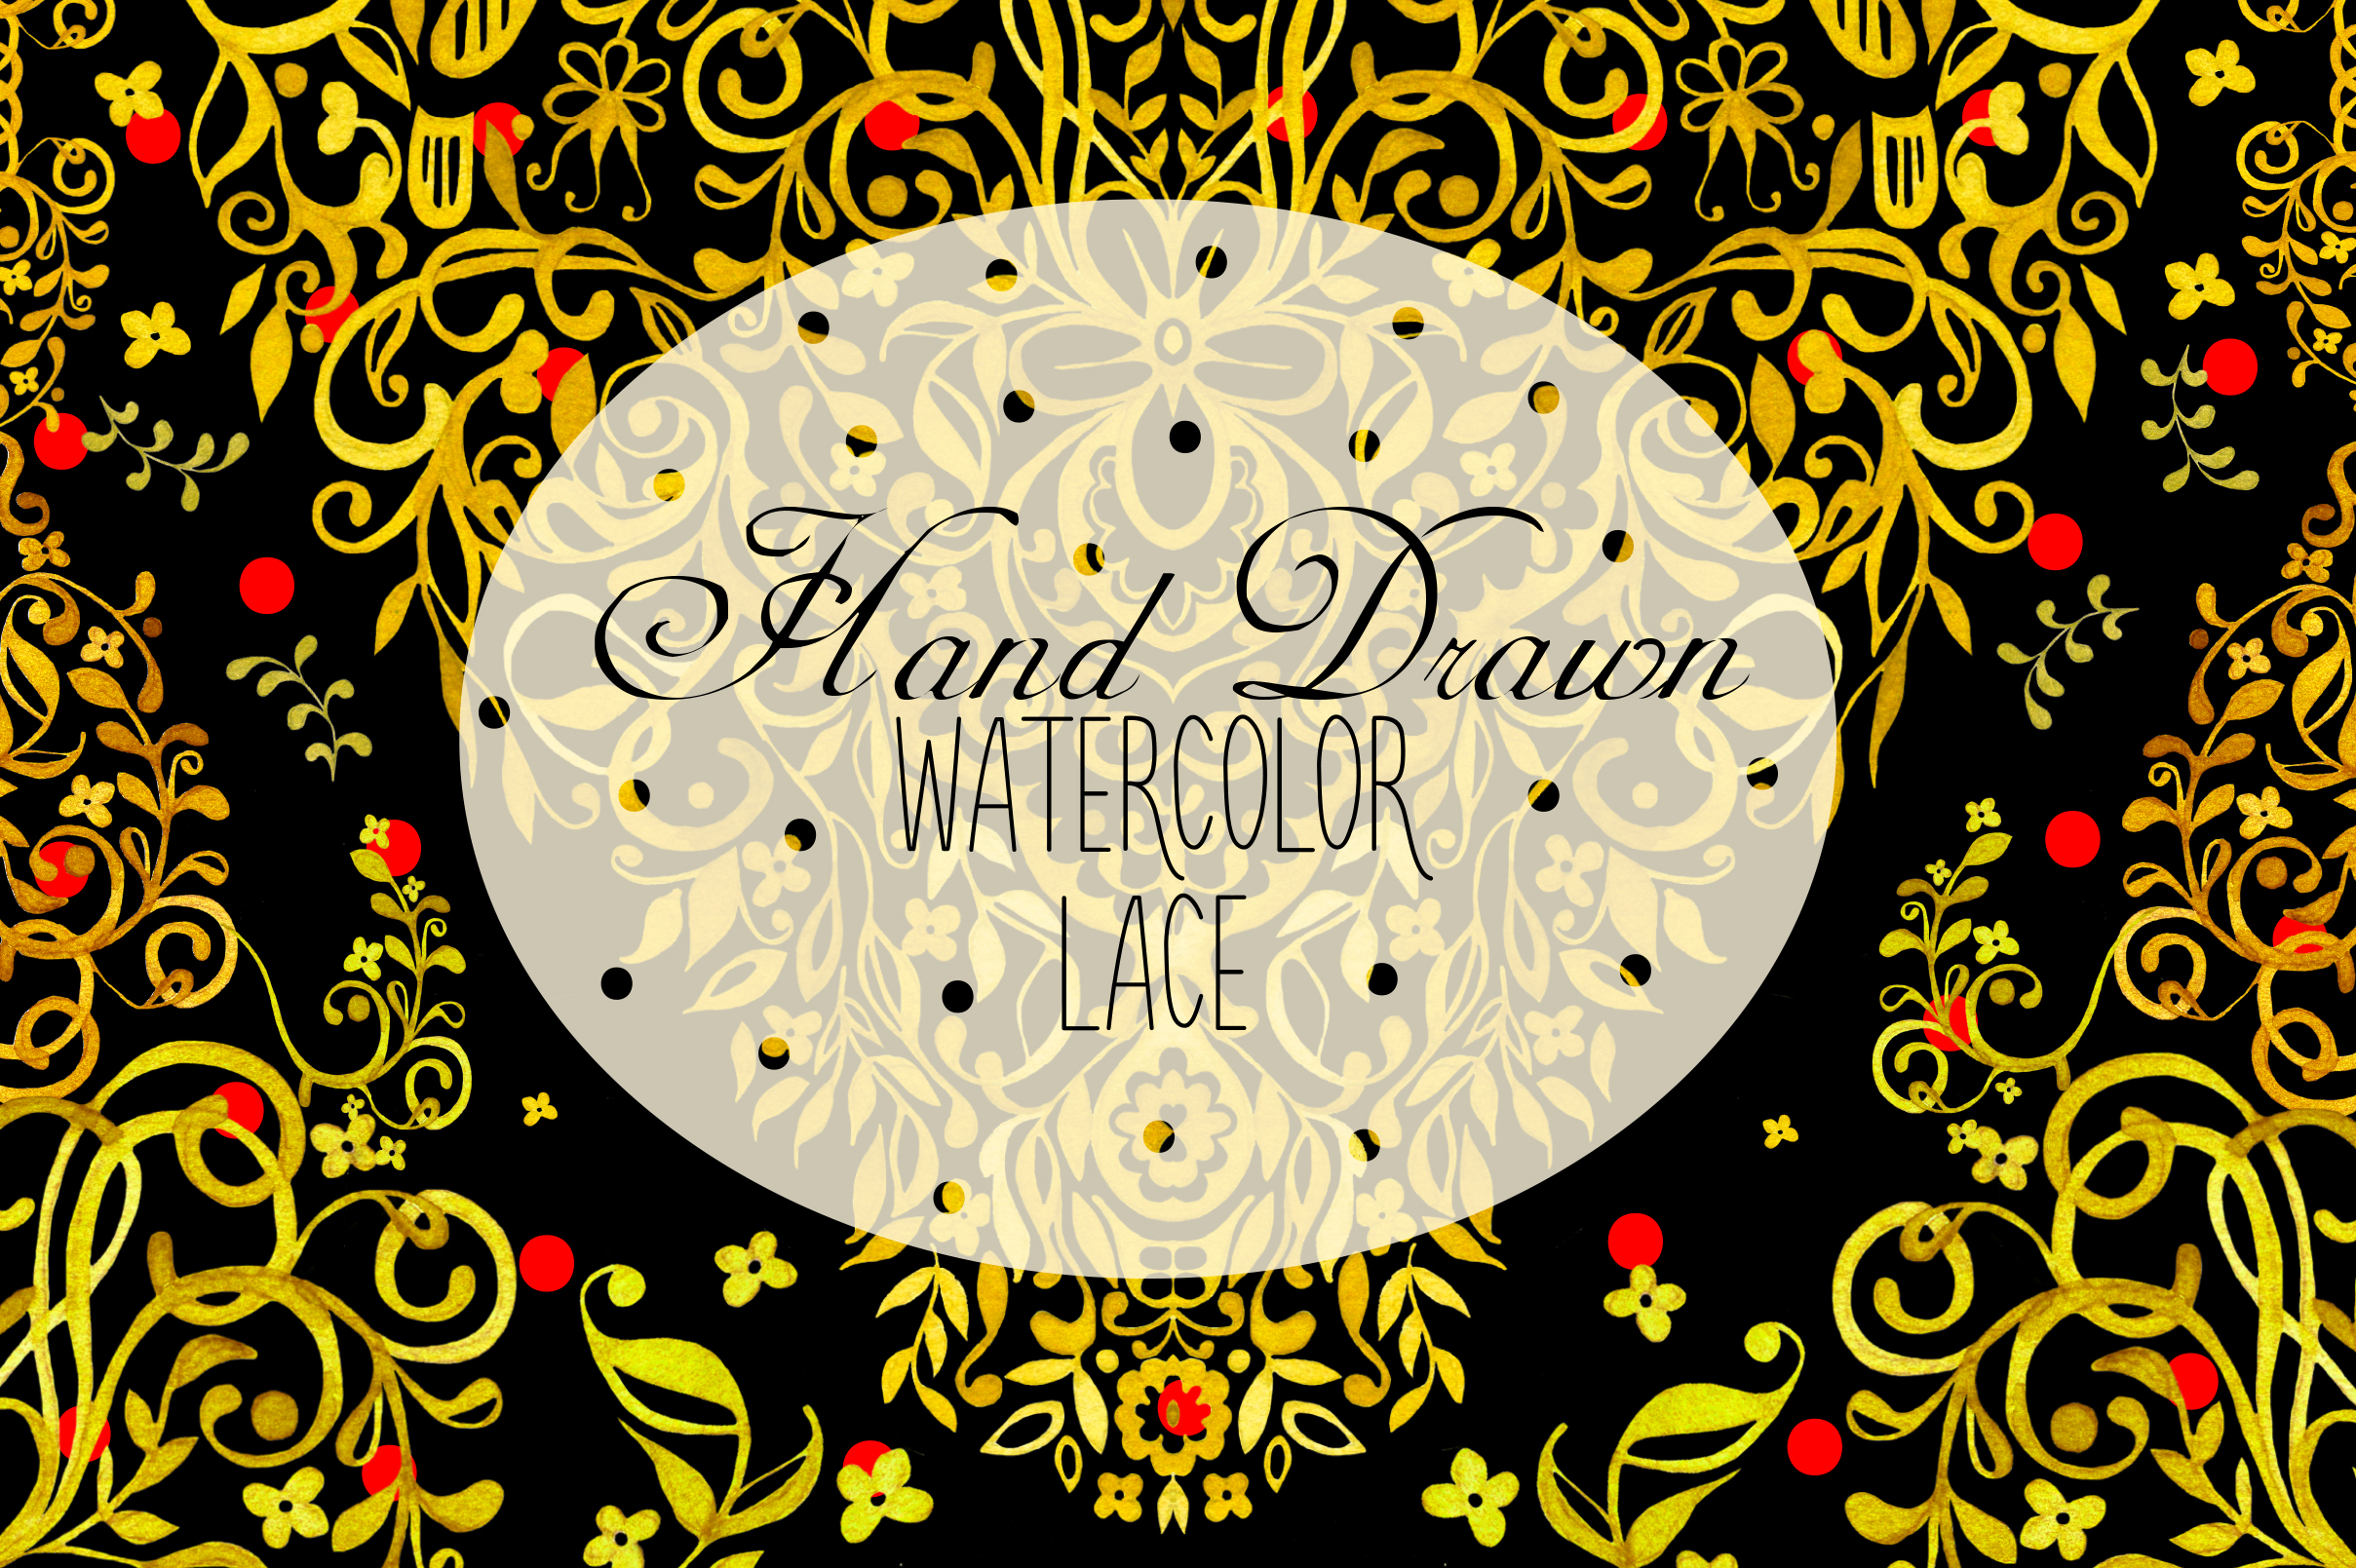 Hand Drawn Watercolor LACE example image 1